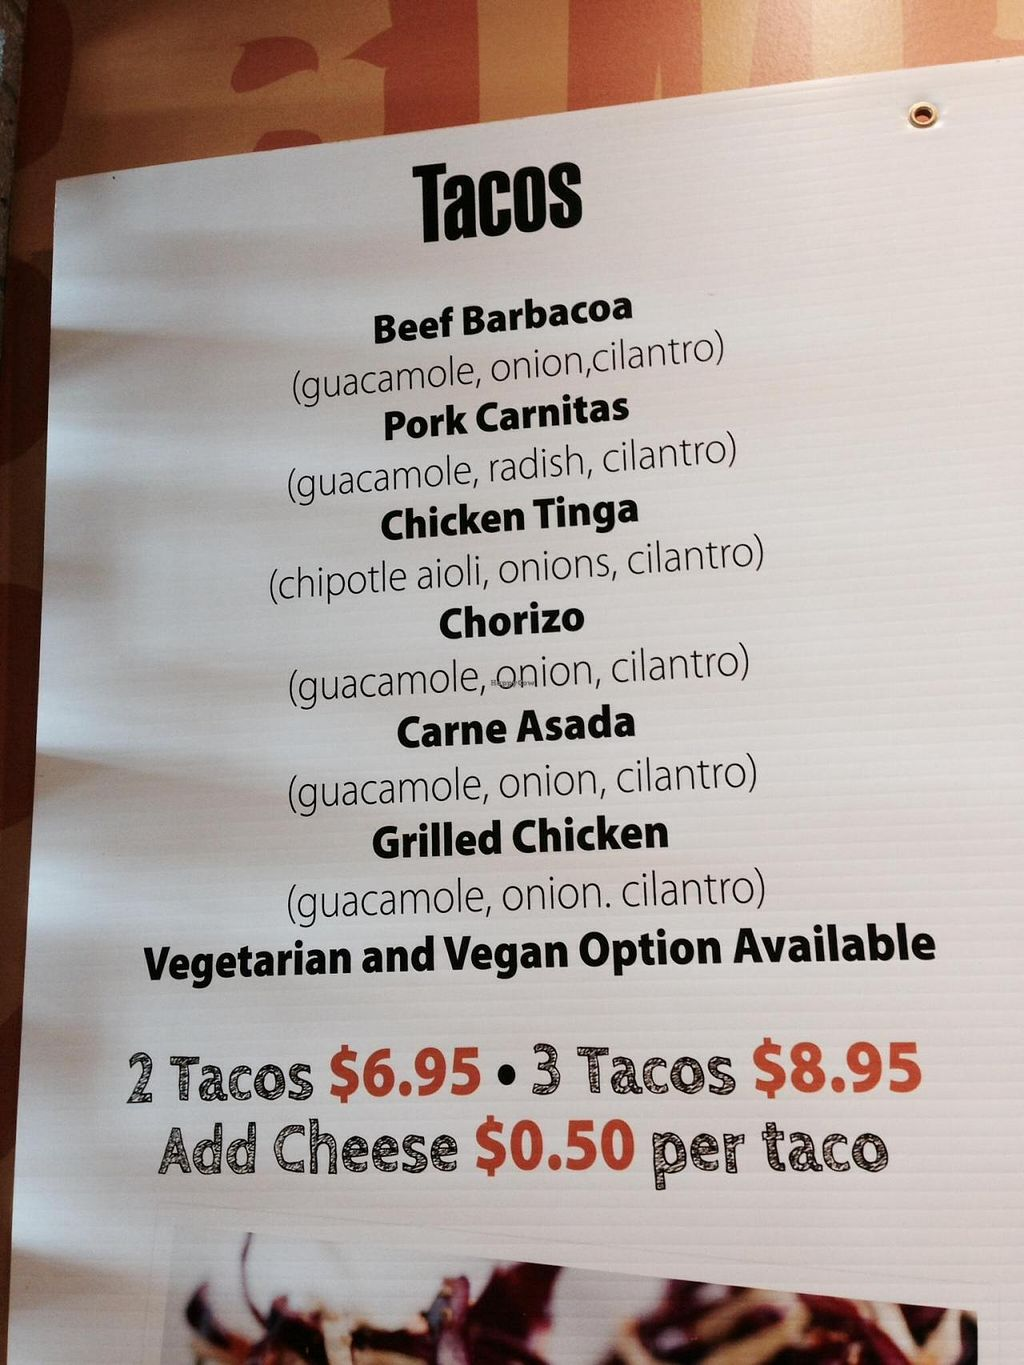 """Photo of CLOSED: Gourmet Gringos  by <a href=""""/members/profile/Gracem"""">Gracem</a> <br/>Taco menu <br/> November 4, 2014  - <a href='/contact/abuse/image/52565/84715'>Report</a>"""